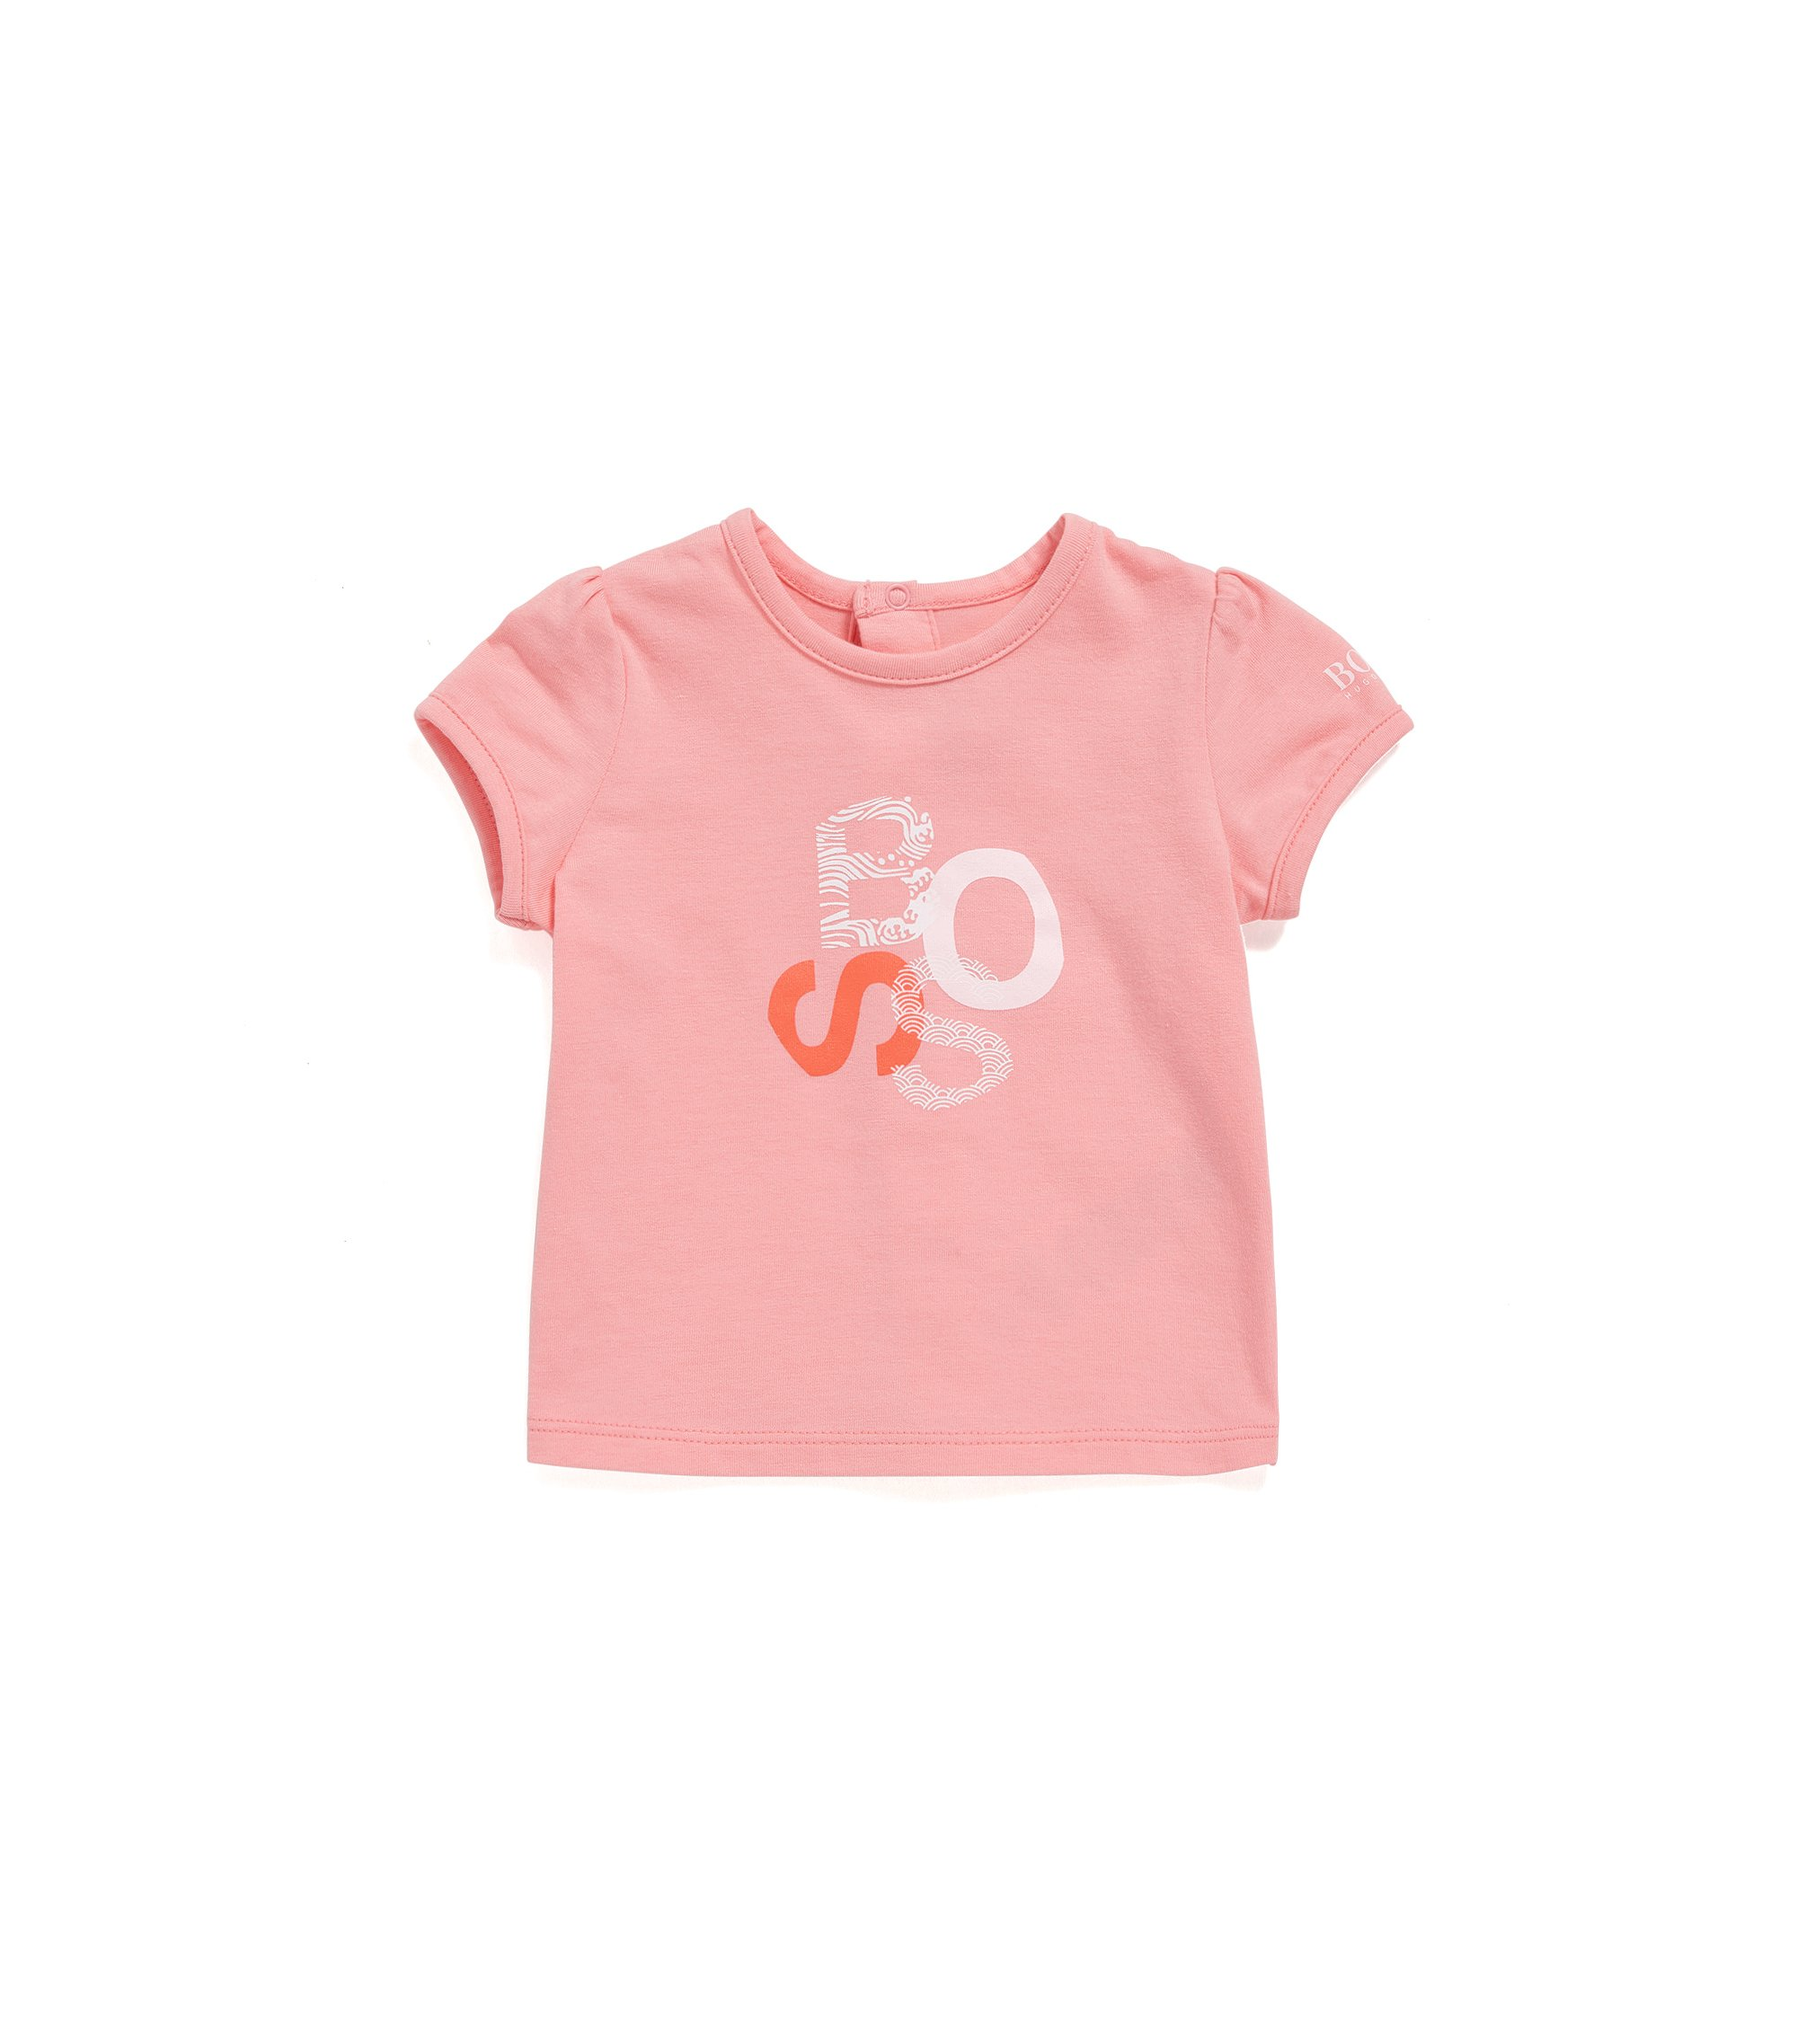 T-shirt pour bébé Regular Fit en jersey simple, Rose clair